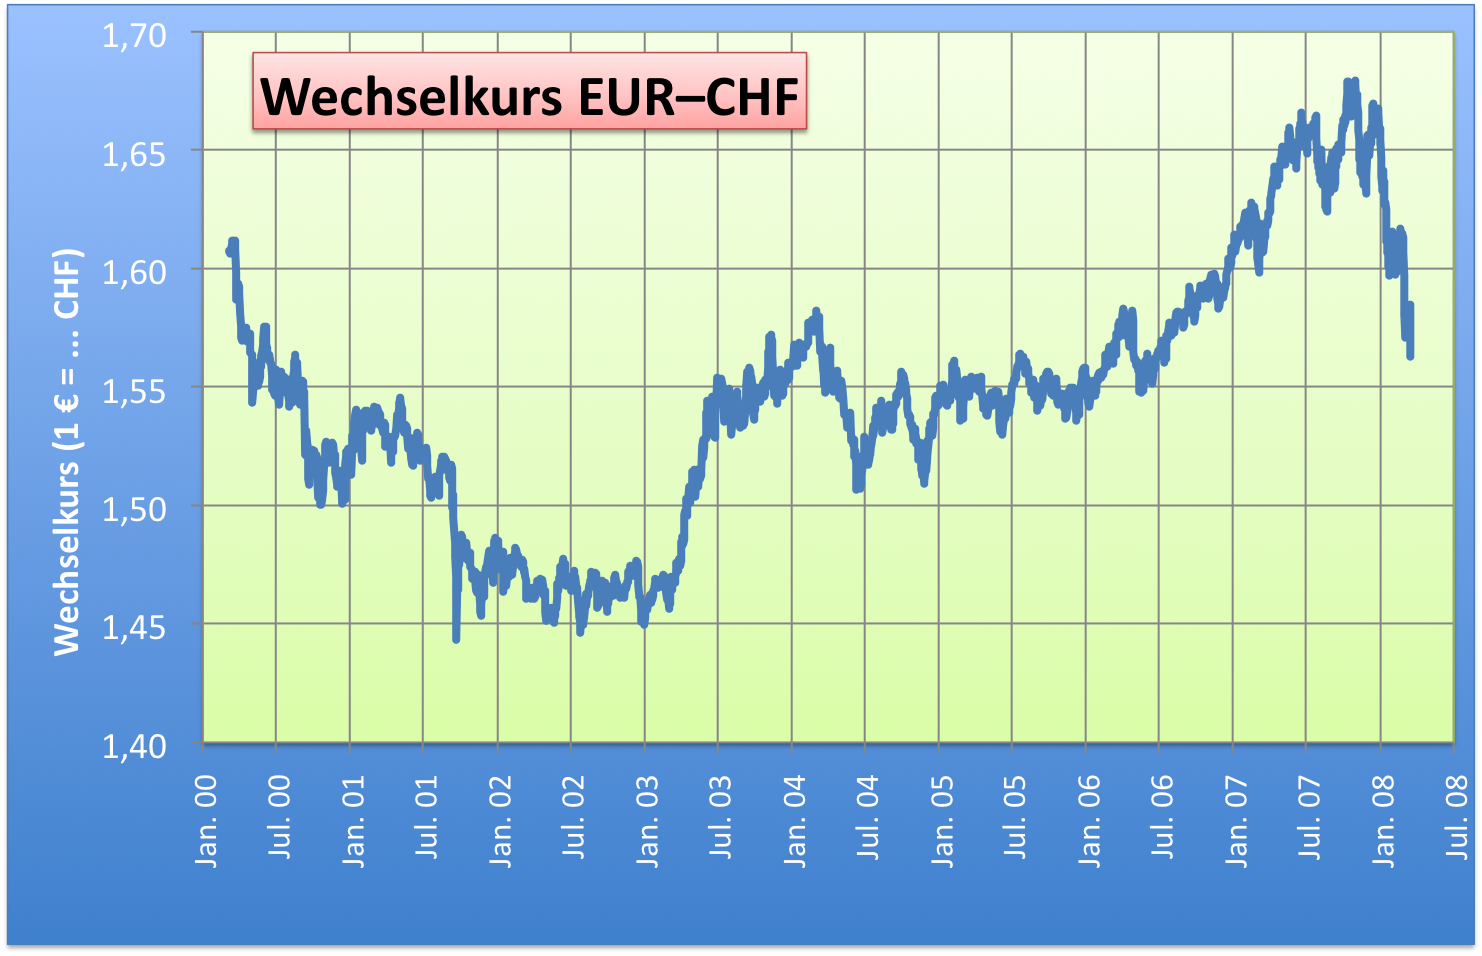 Free foreign exchange rates and tools including a currency conversion calculator, historical rates and graphs, and a monthly exchange rate average.